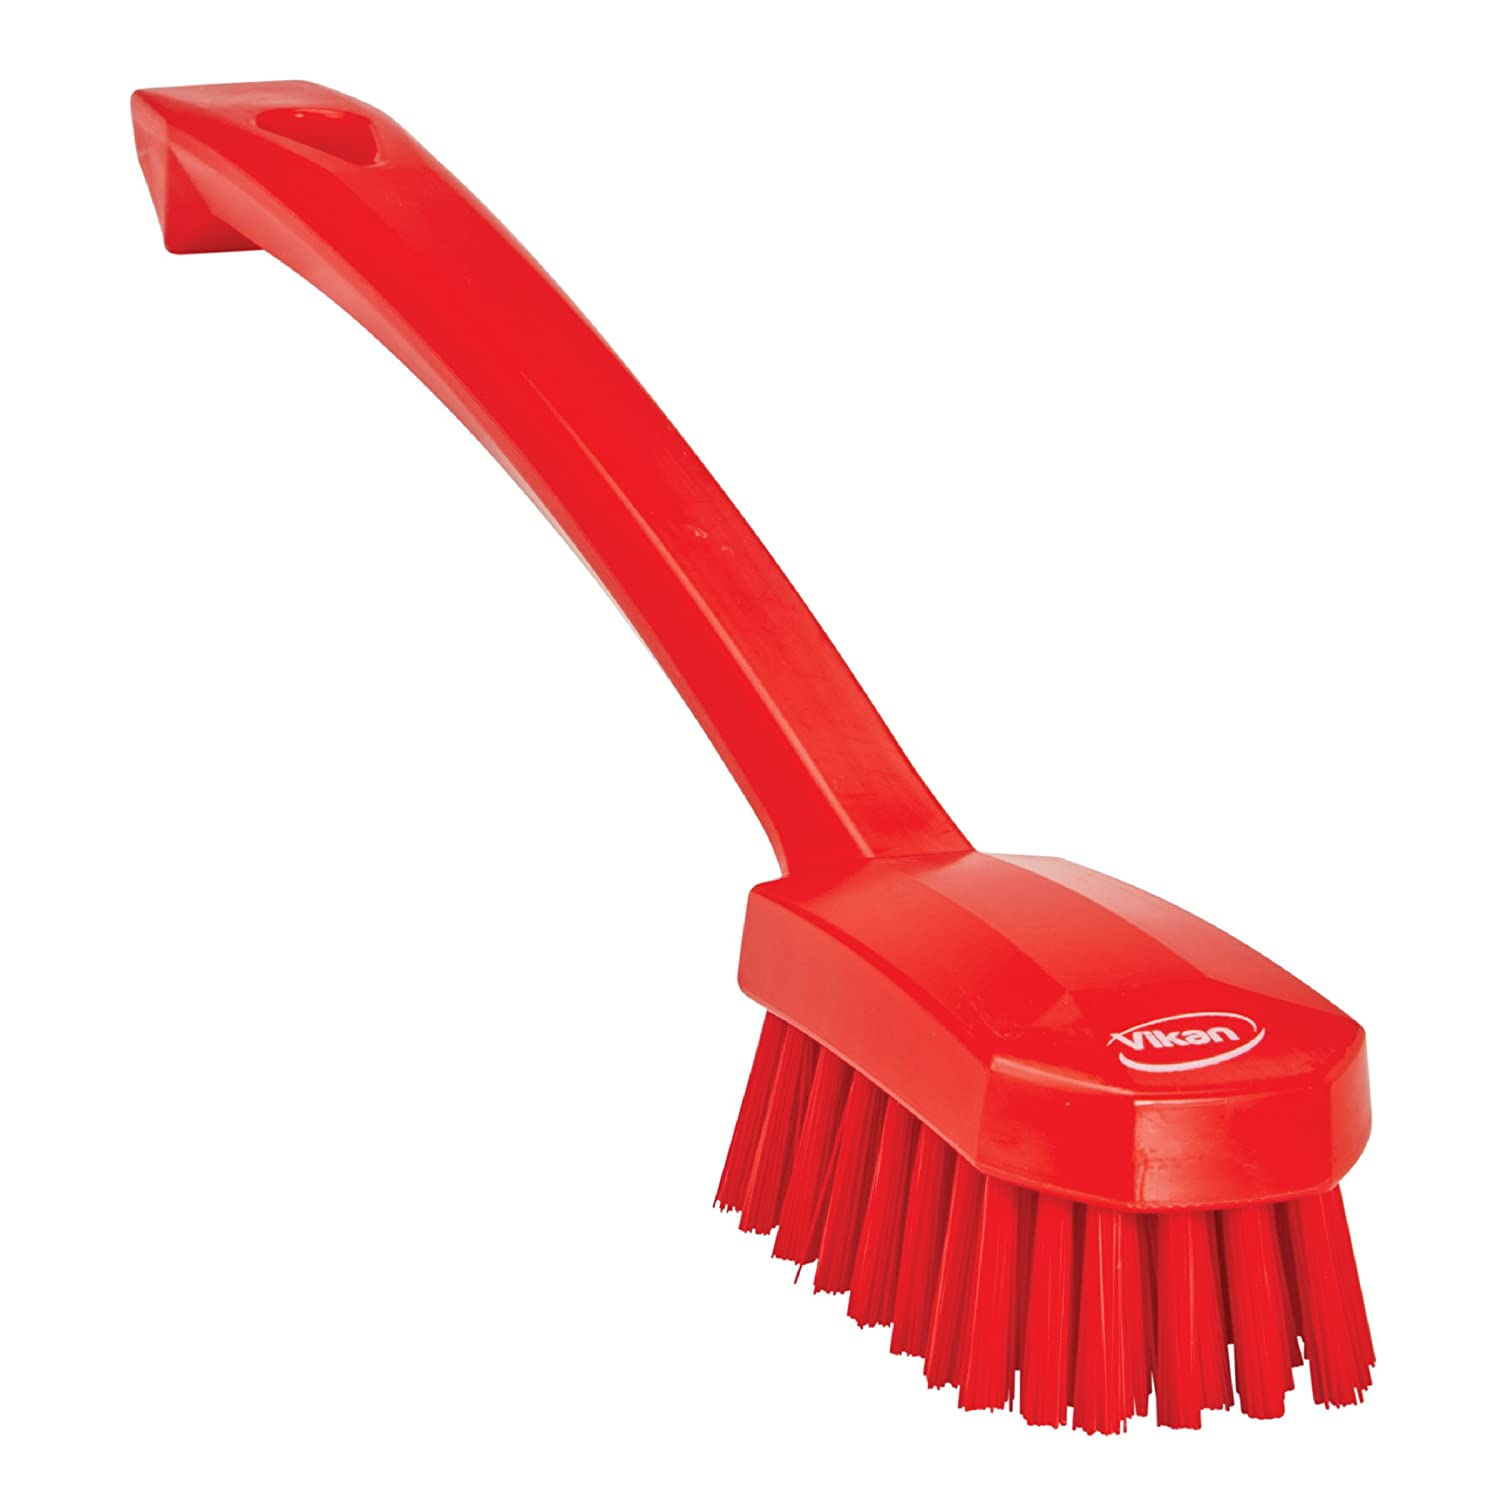 Vikan 30883 Small Utility Brush, Polyester Bristle, 2.76' Height, 1.57' Width, 10.24' Length, Polypropylene, Blue 2.76 Height 1.57 Width 10.24 Length Remco Products